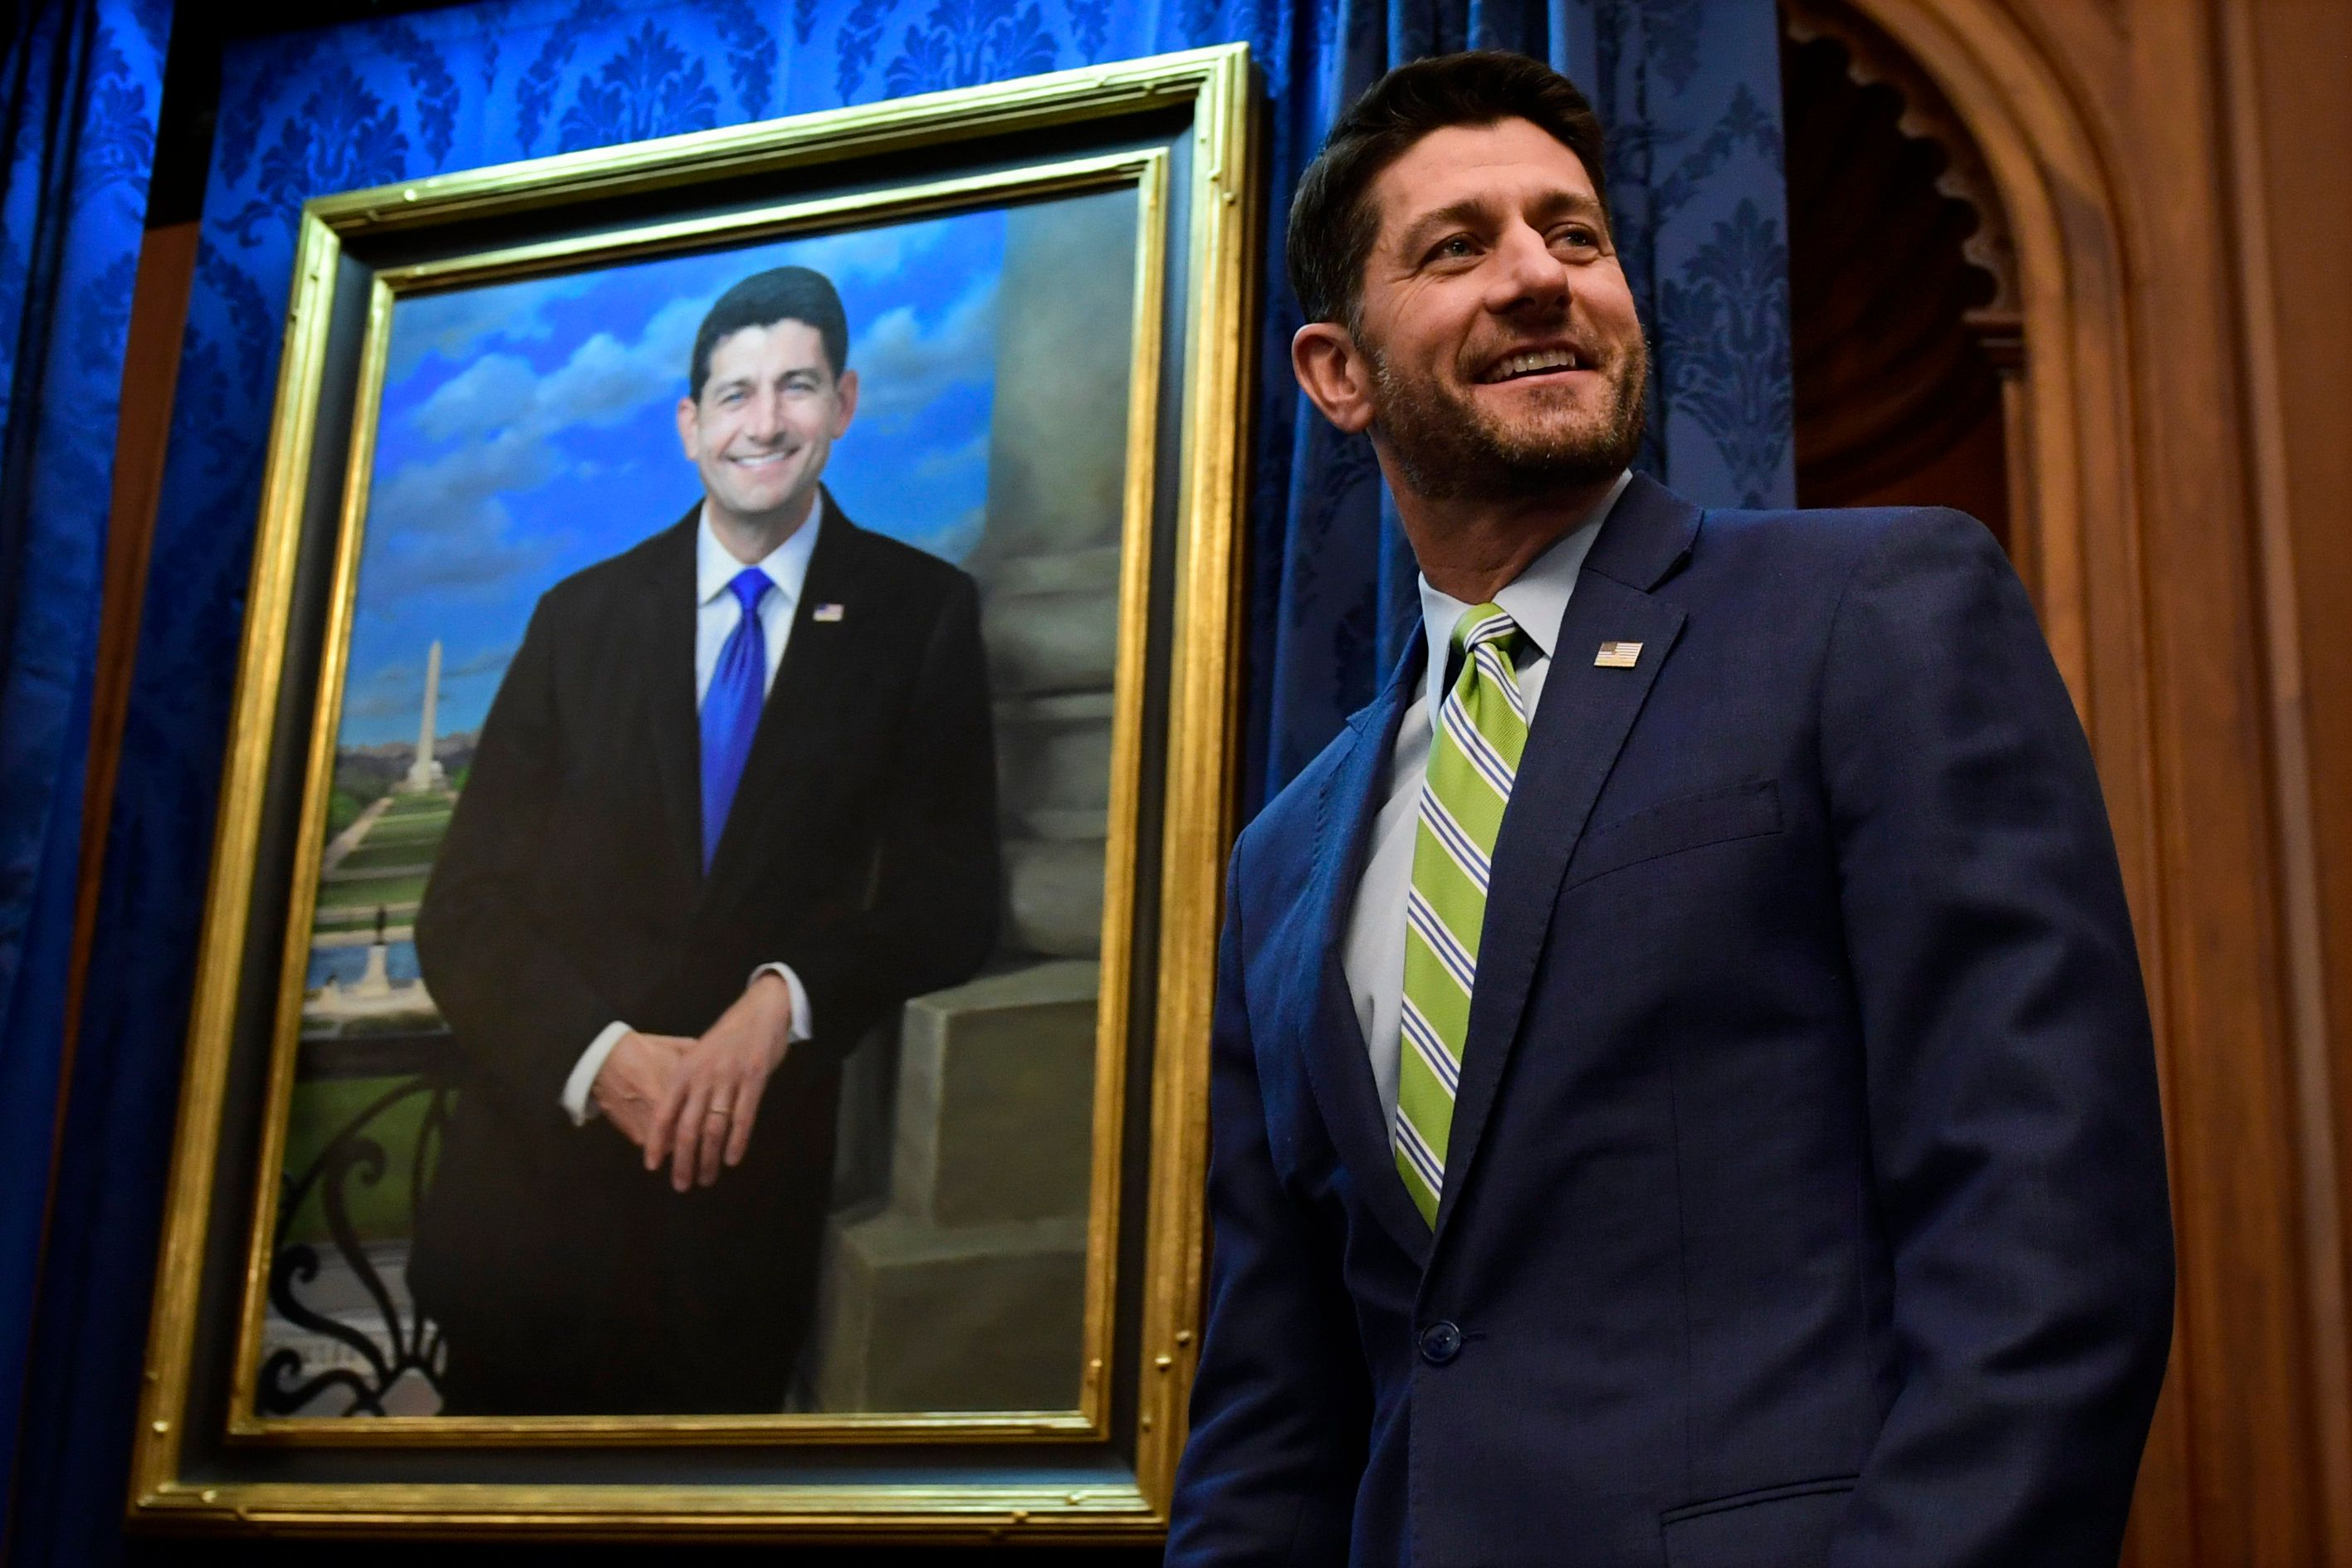 House Speaker Paul Ryan of Wis., watches as his portrait is unveiled on Capitol Hill in Washington, Thursday, Nov. 29, 2018. (AP Photo/Susan Walsh)